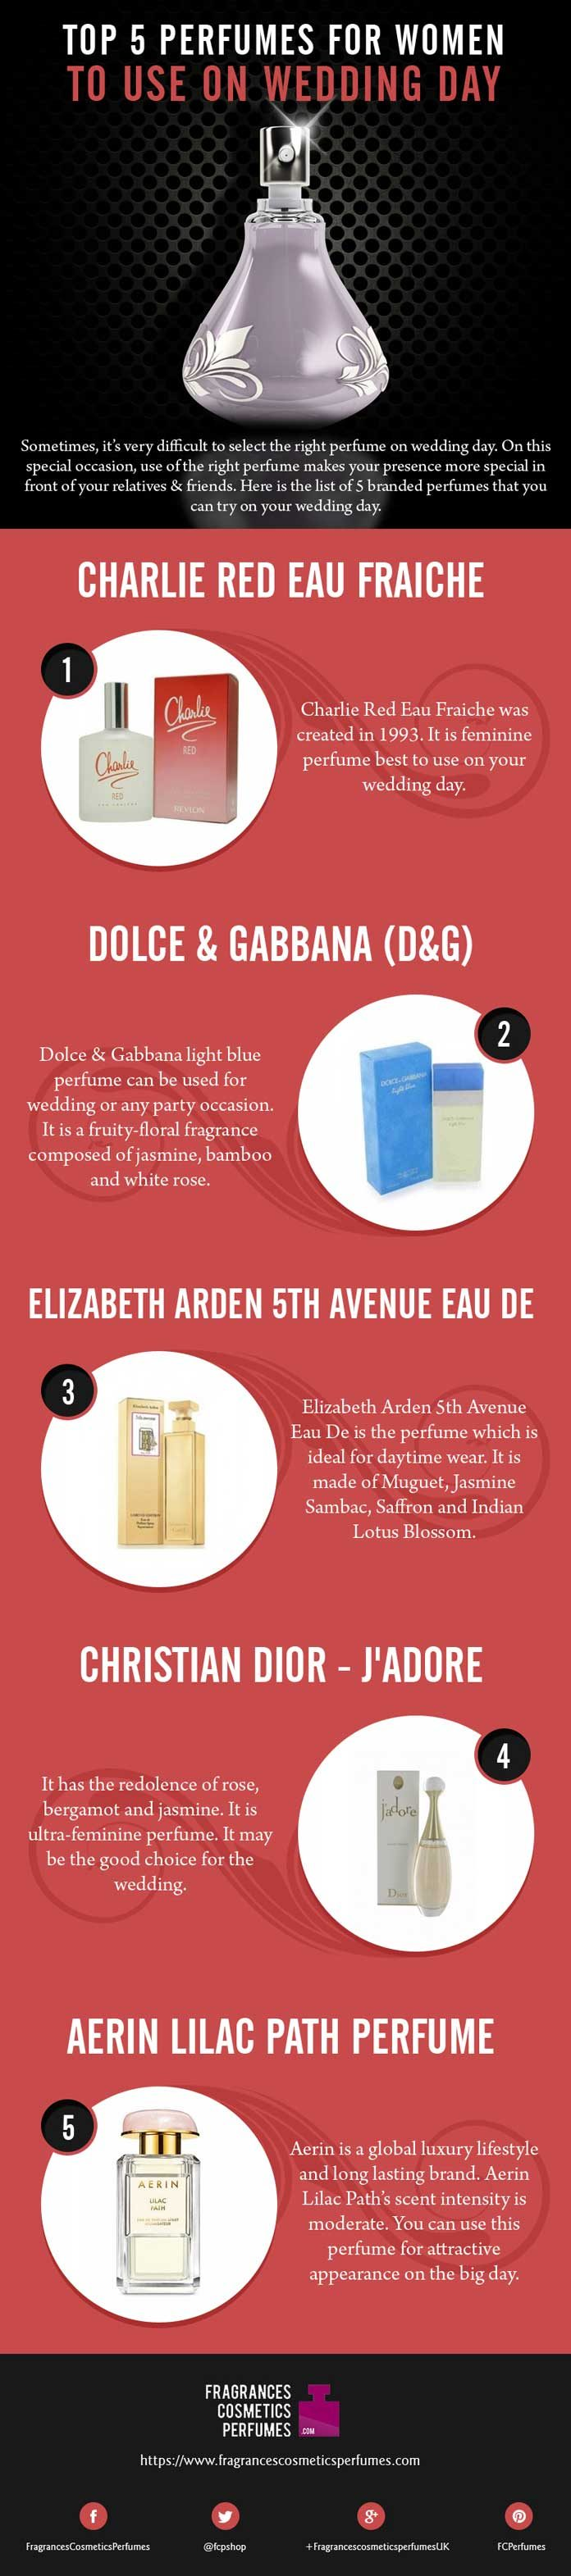 Top-5-Perfumes-for-women-to-use-on-wedding-day